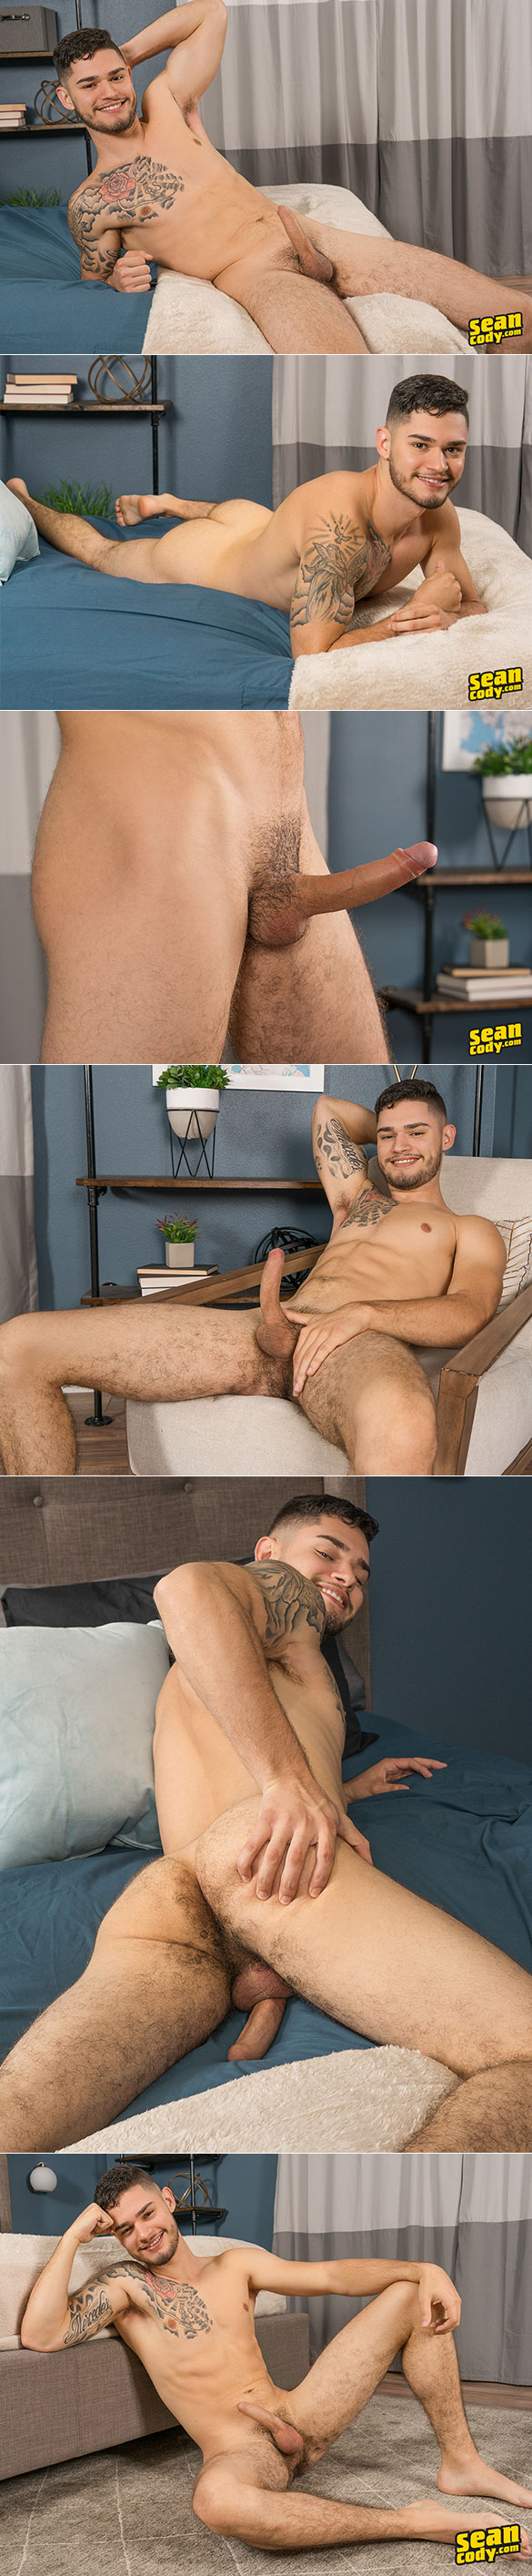 Sean Cody: Ruben busts a nut